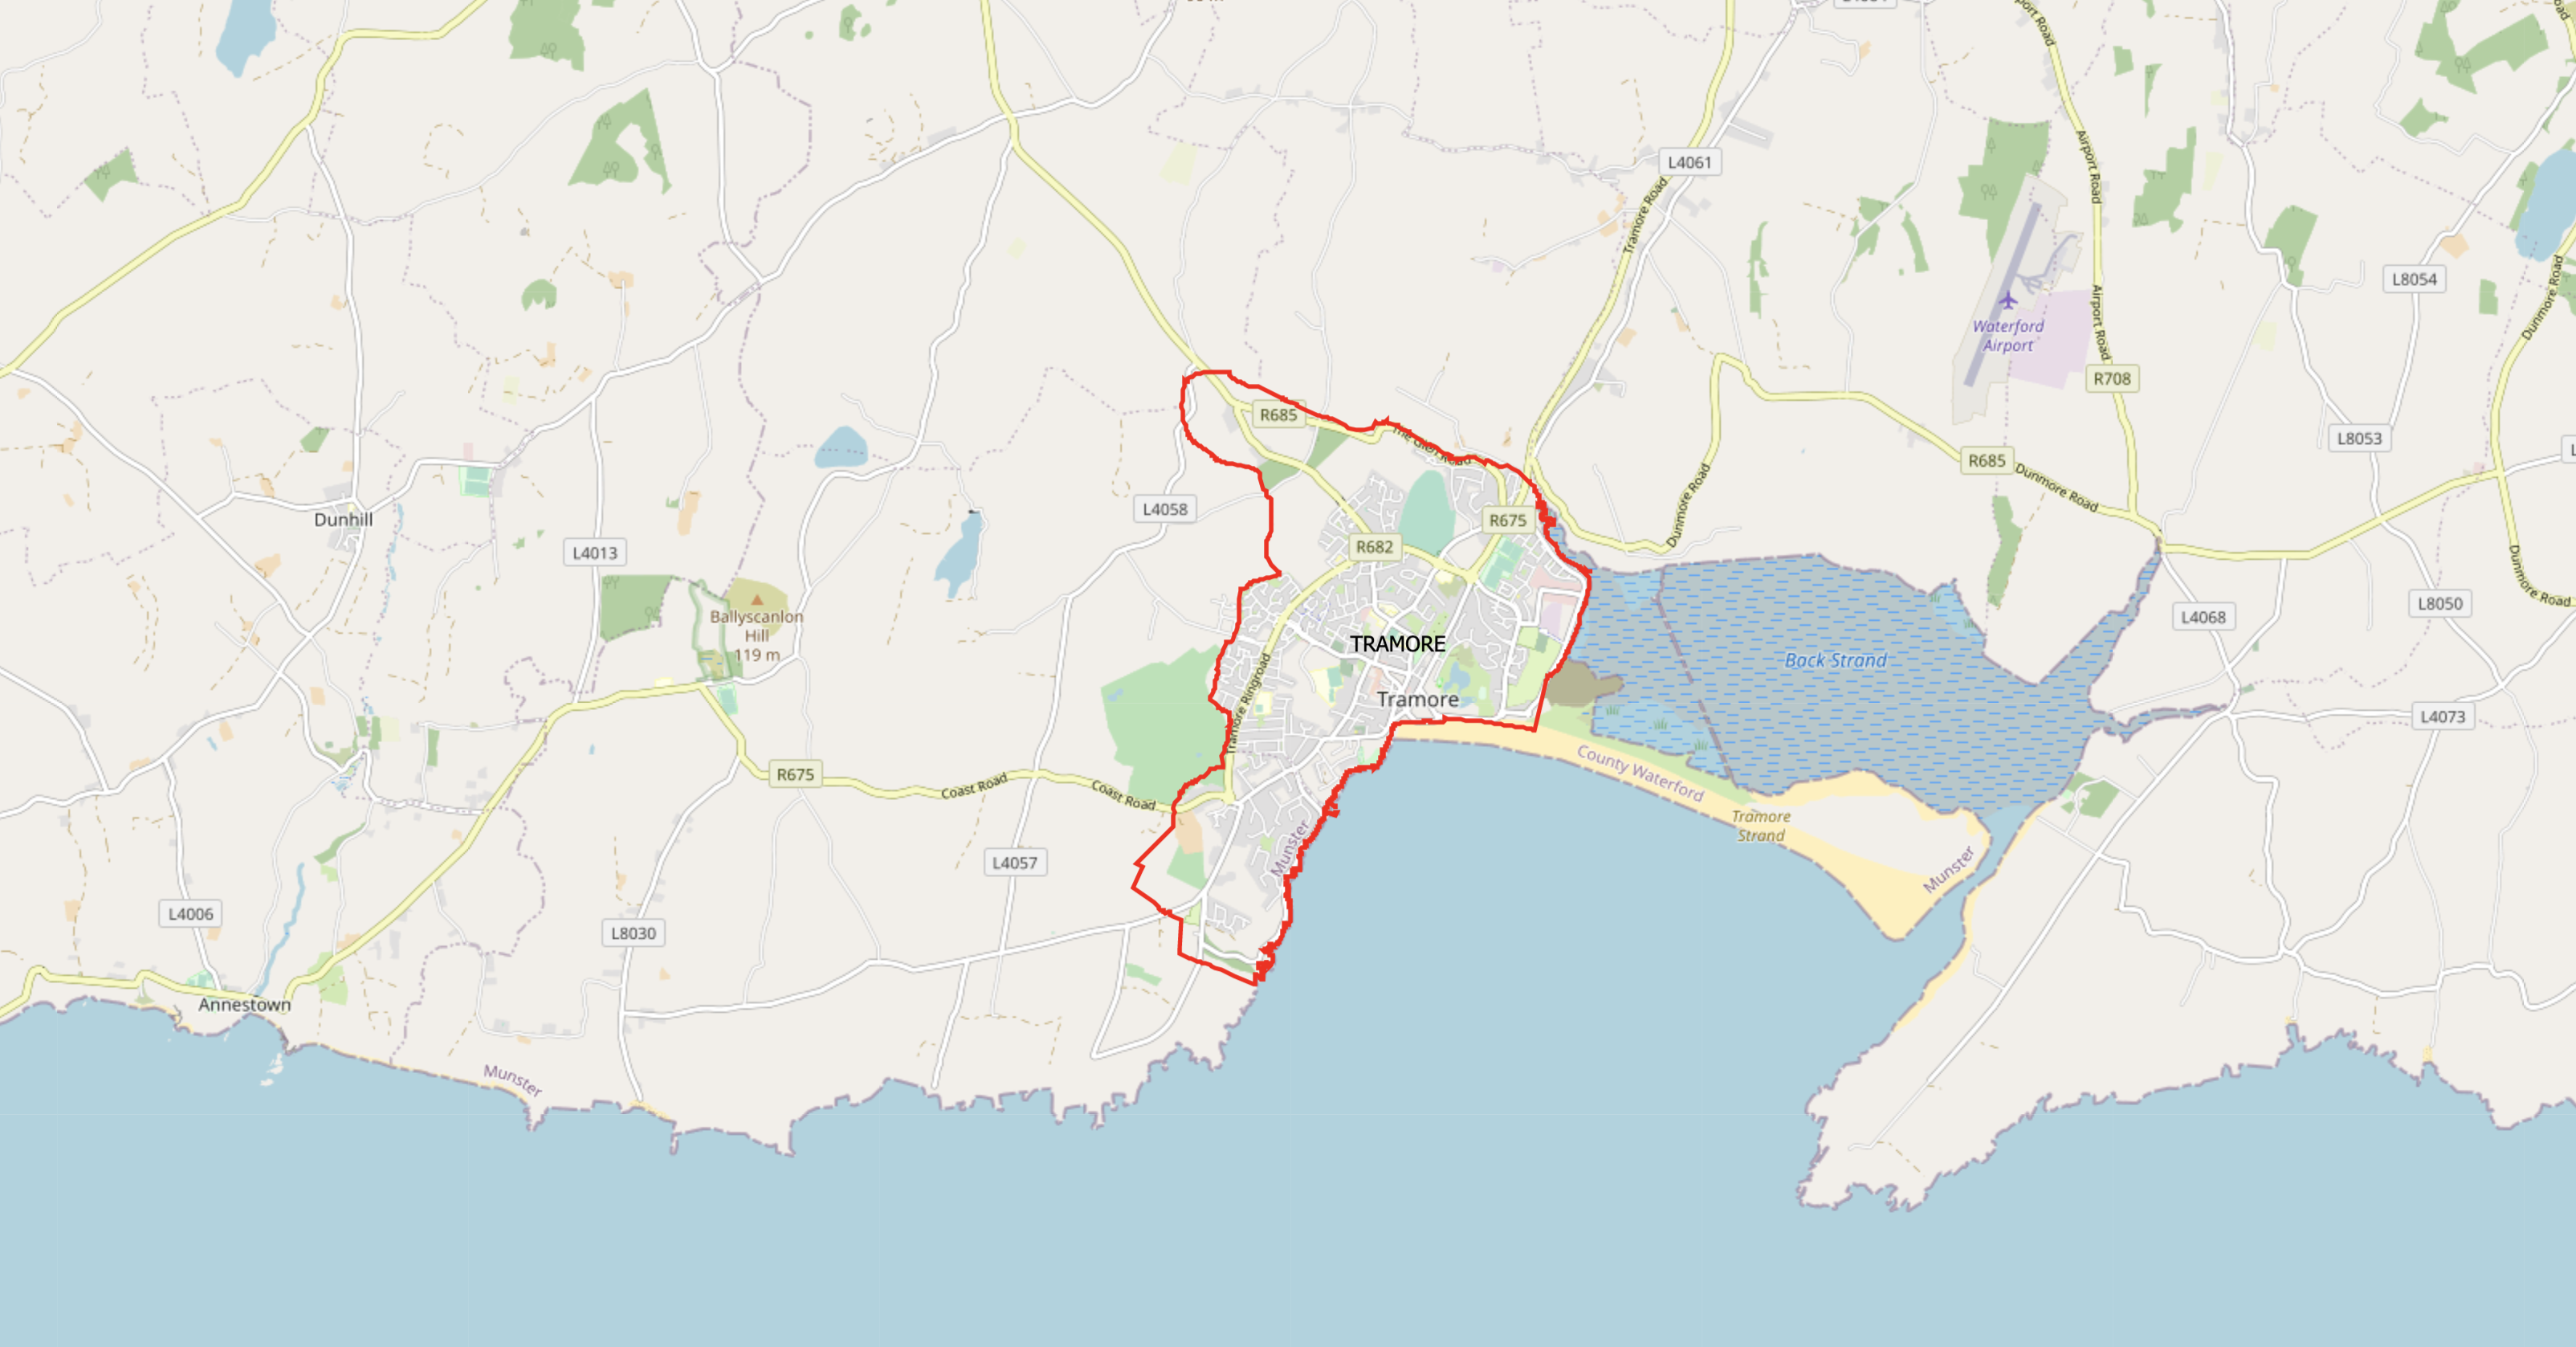 solar-panels-tramore-waterford-ireland-map-img